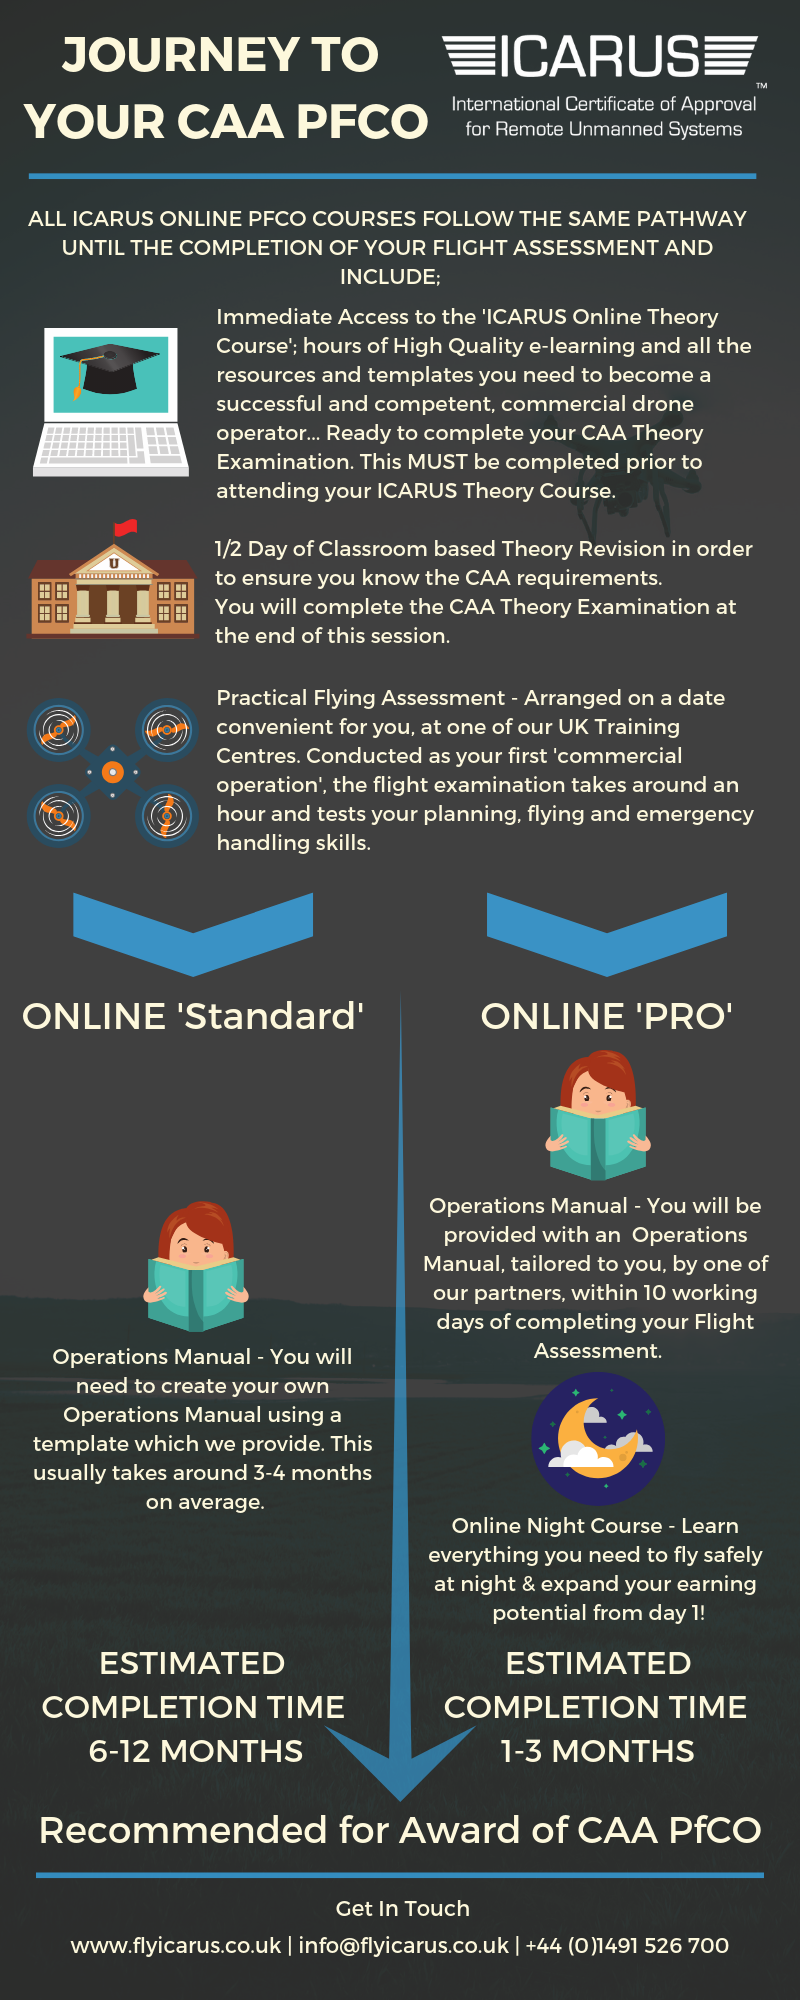 ICARUS Online Training Workflow Infographic